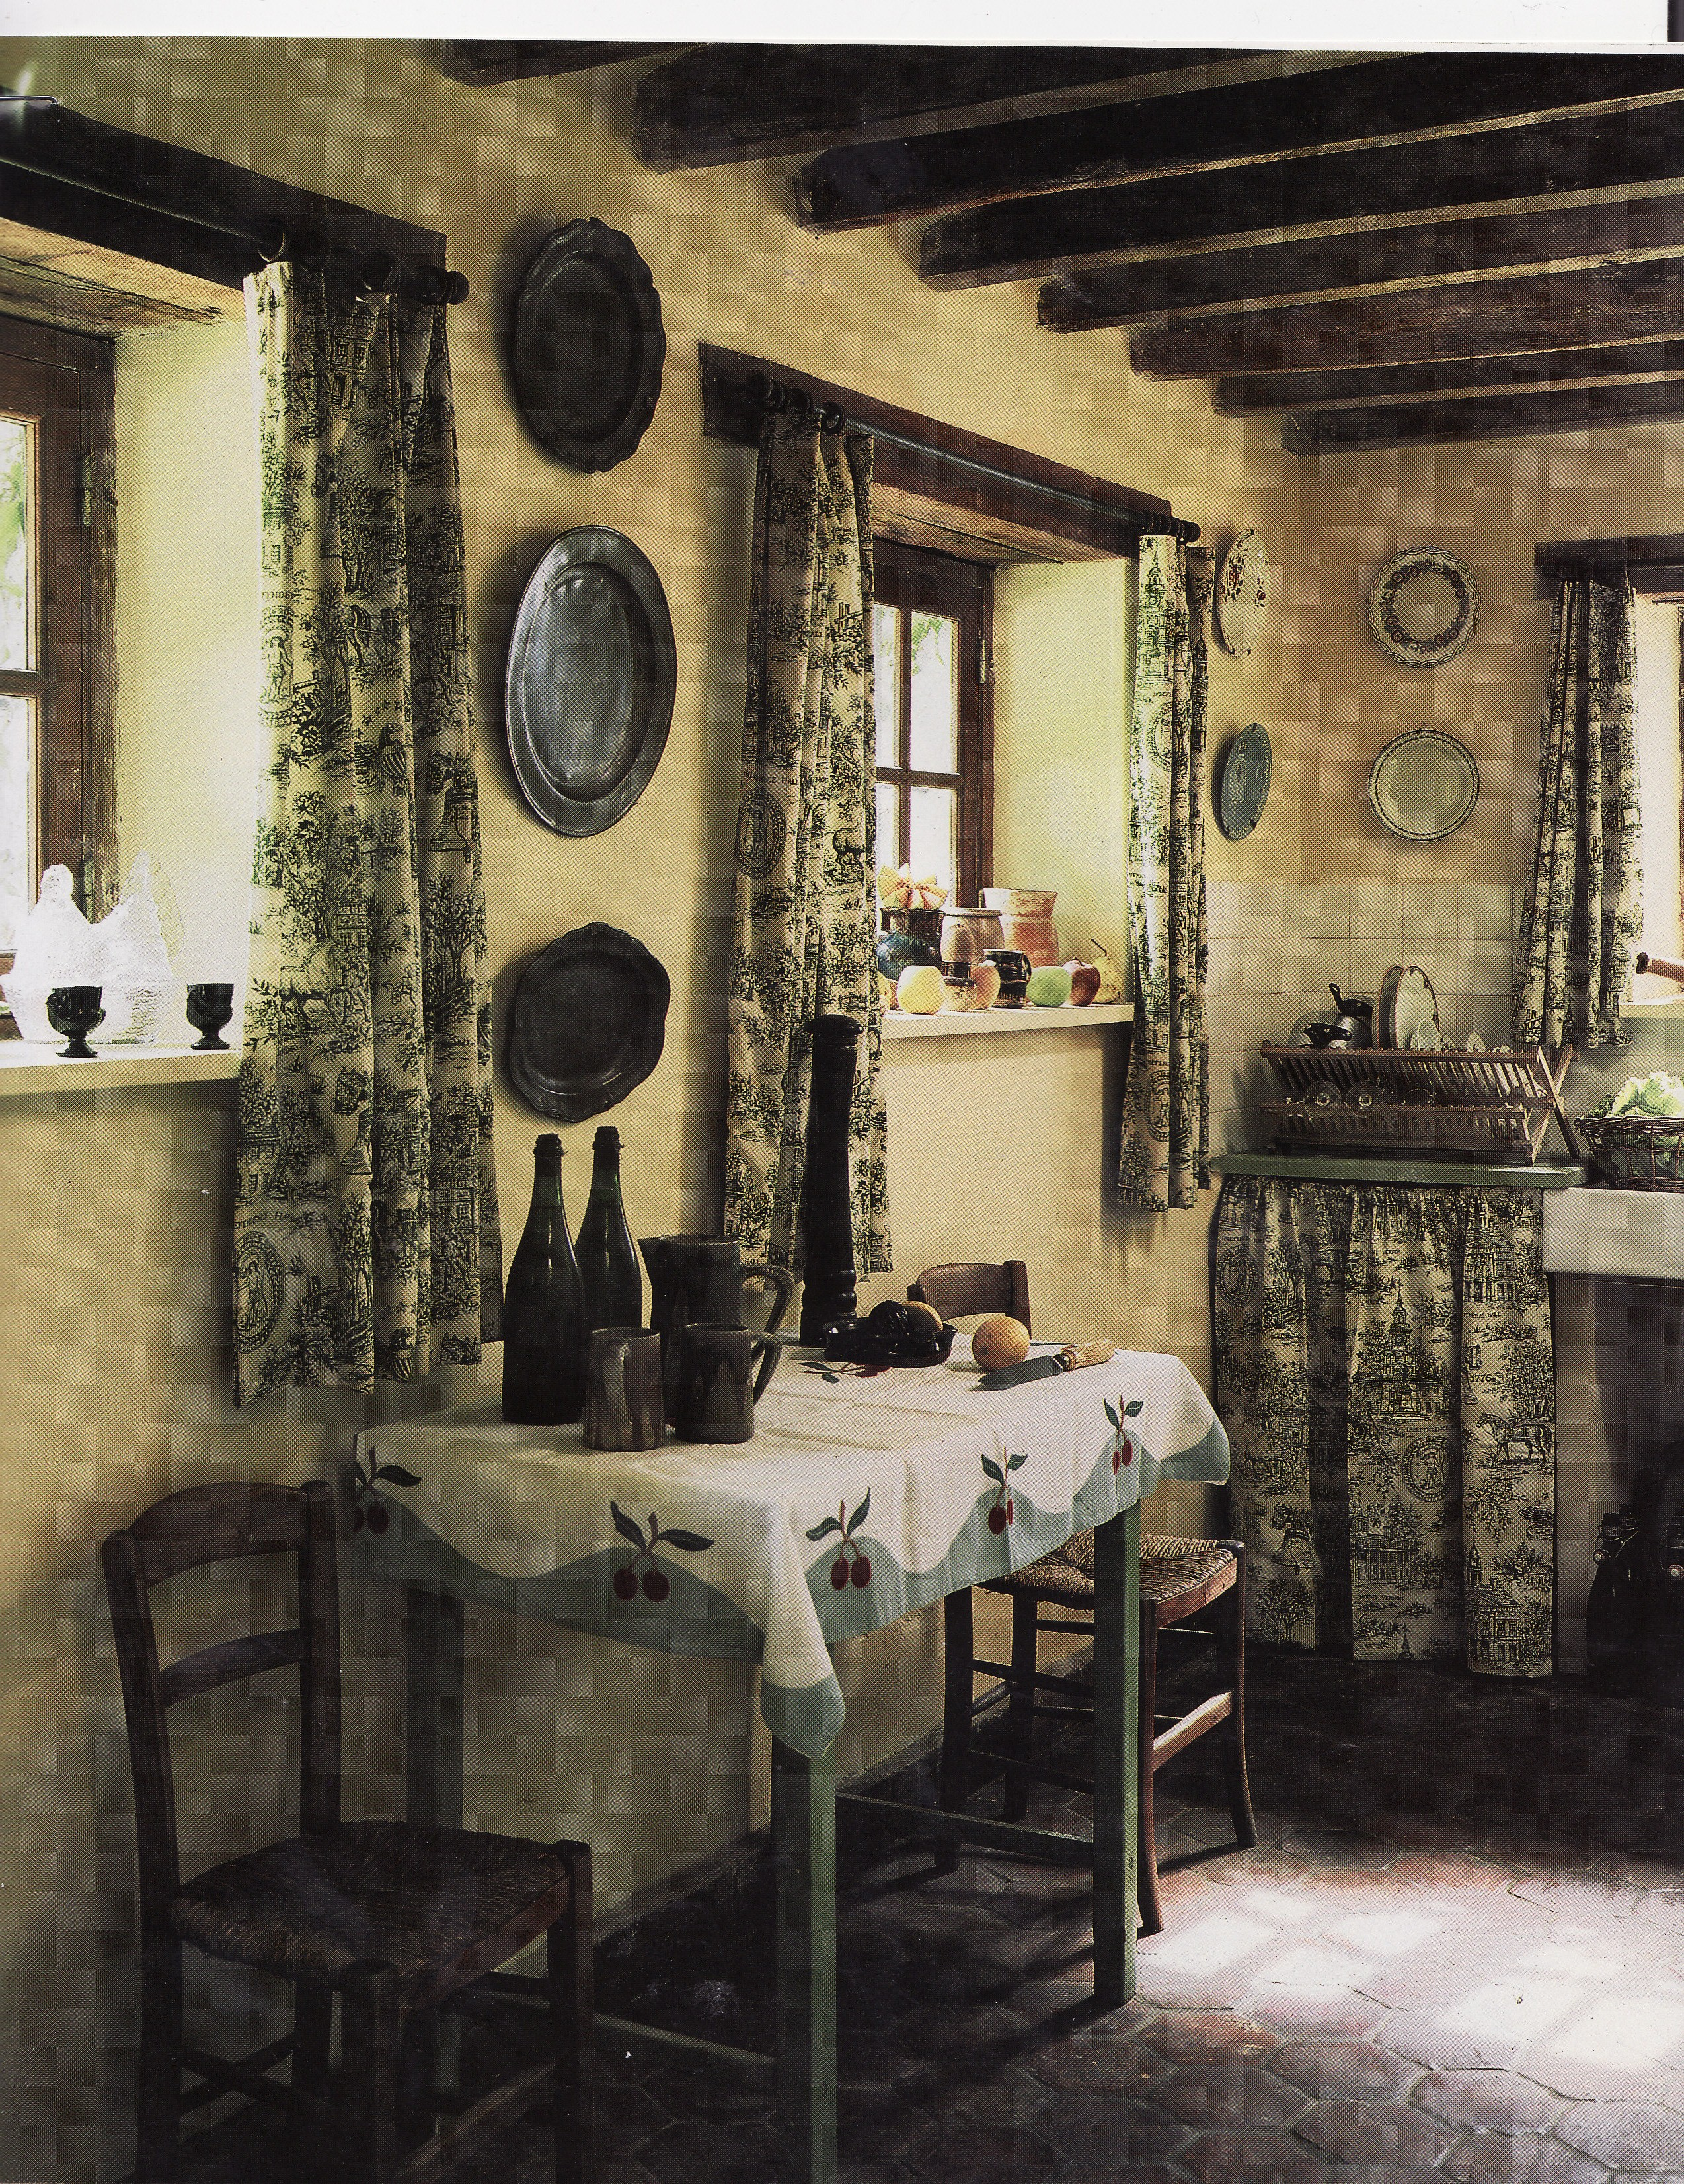 Compared with the manor house above this kitchen with its rustic